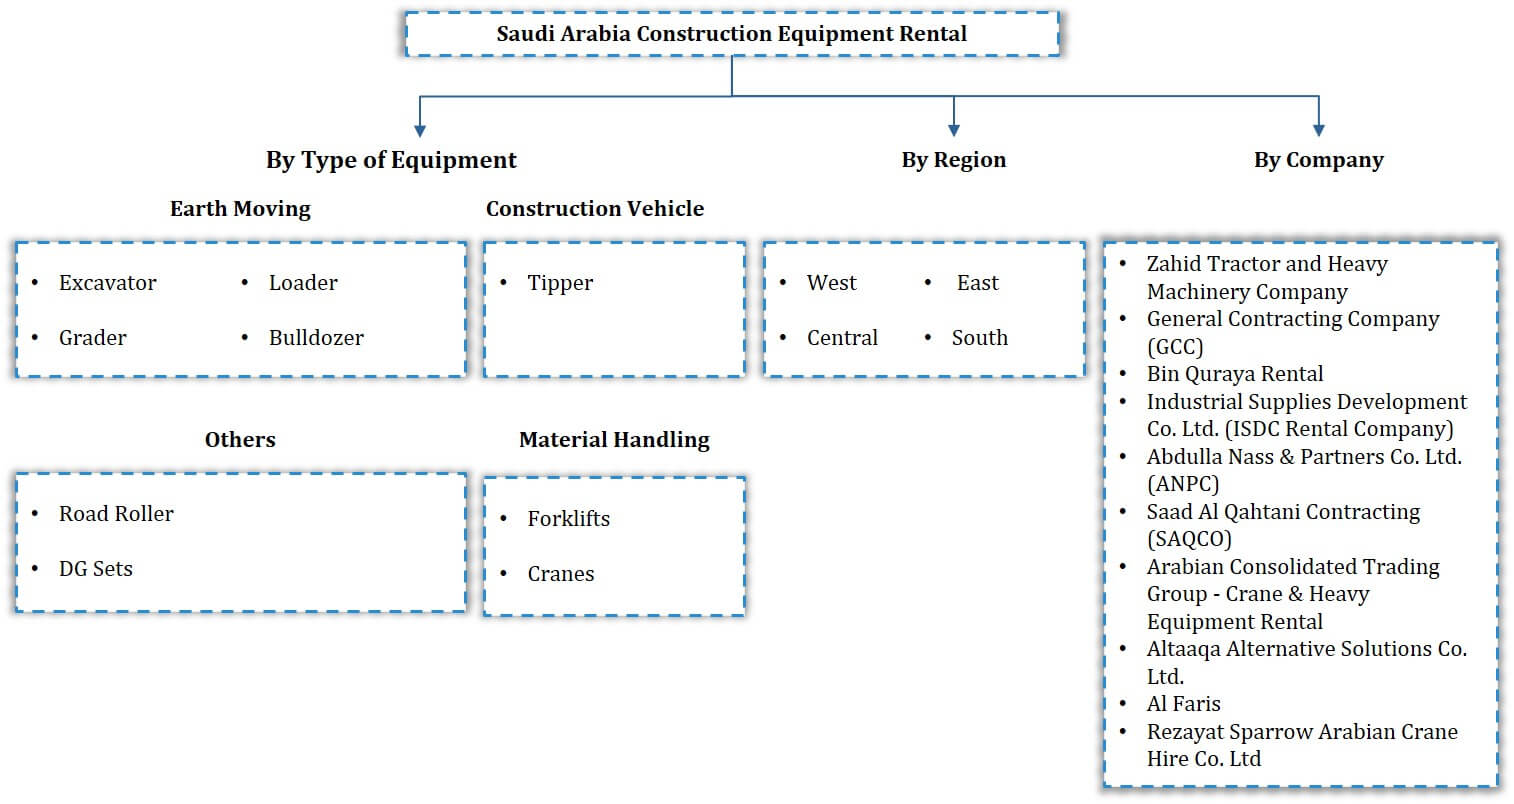 Saudi Arabia Construction Equipment Rental Market Analysis, 2020